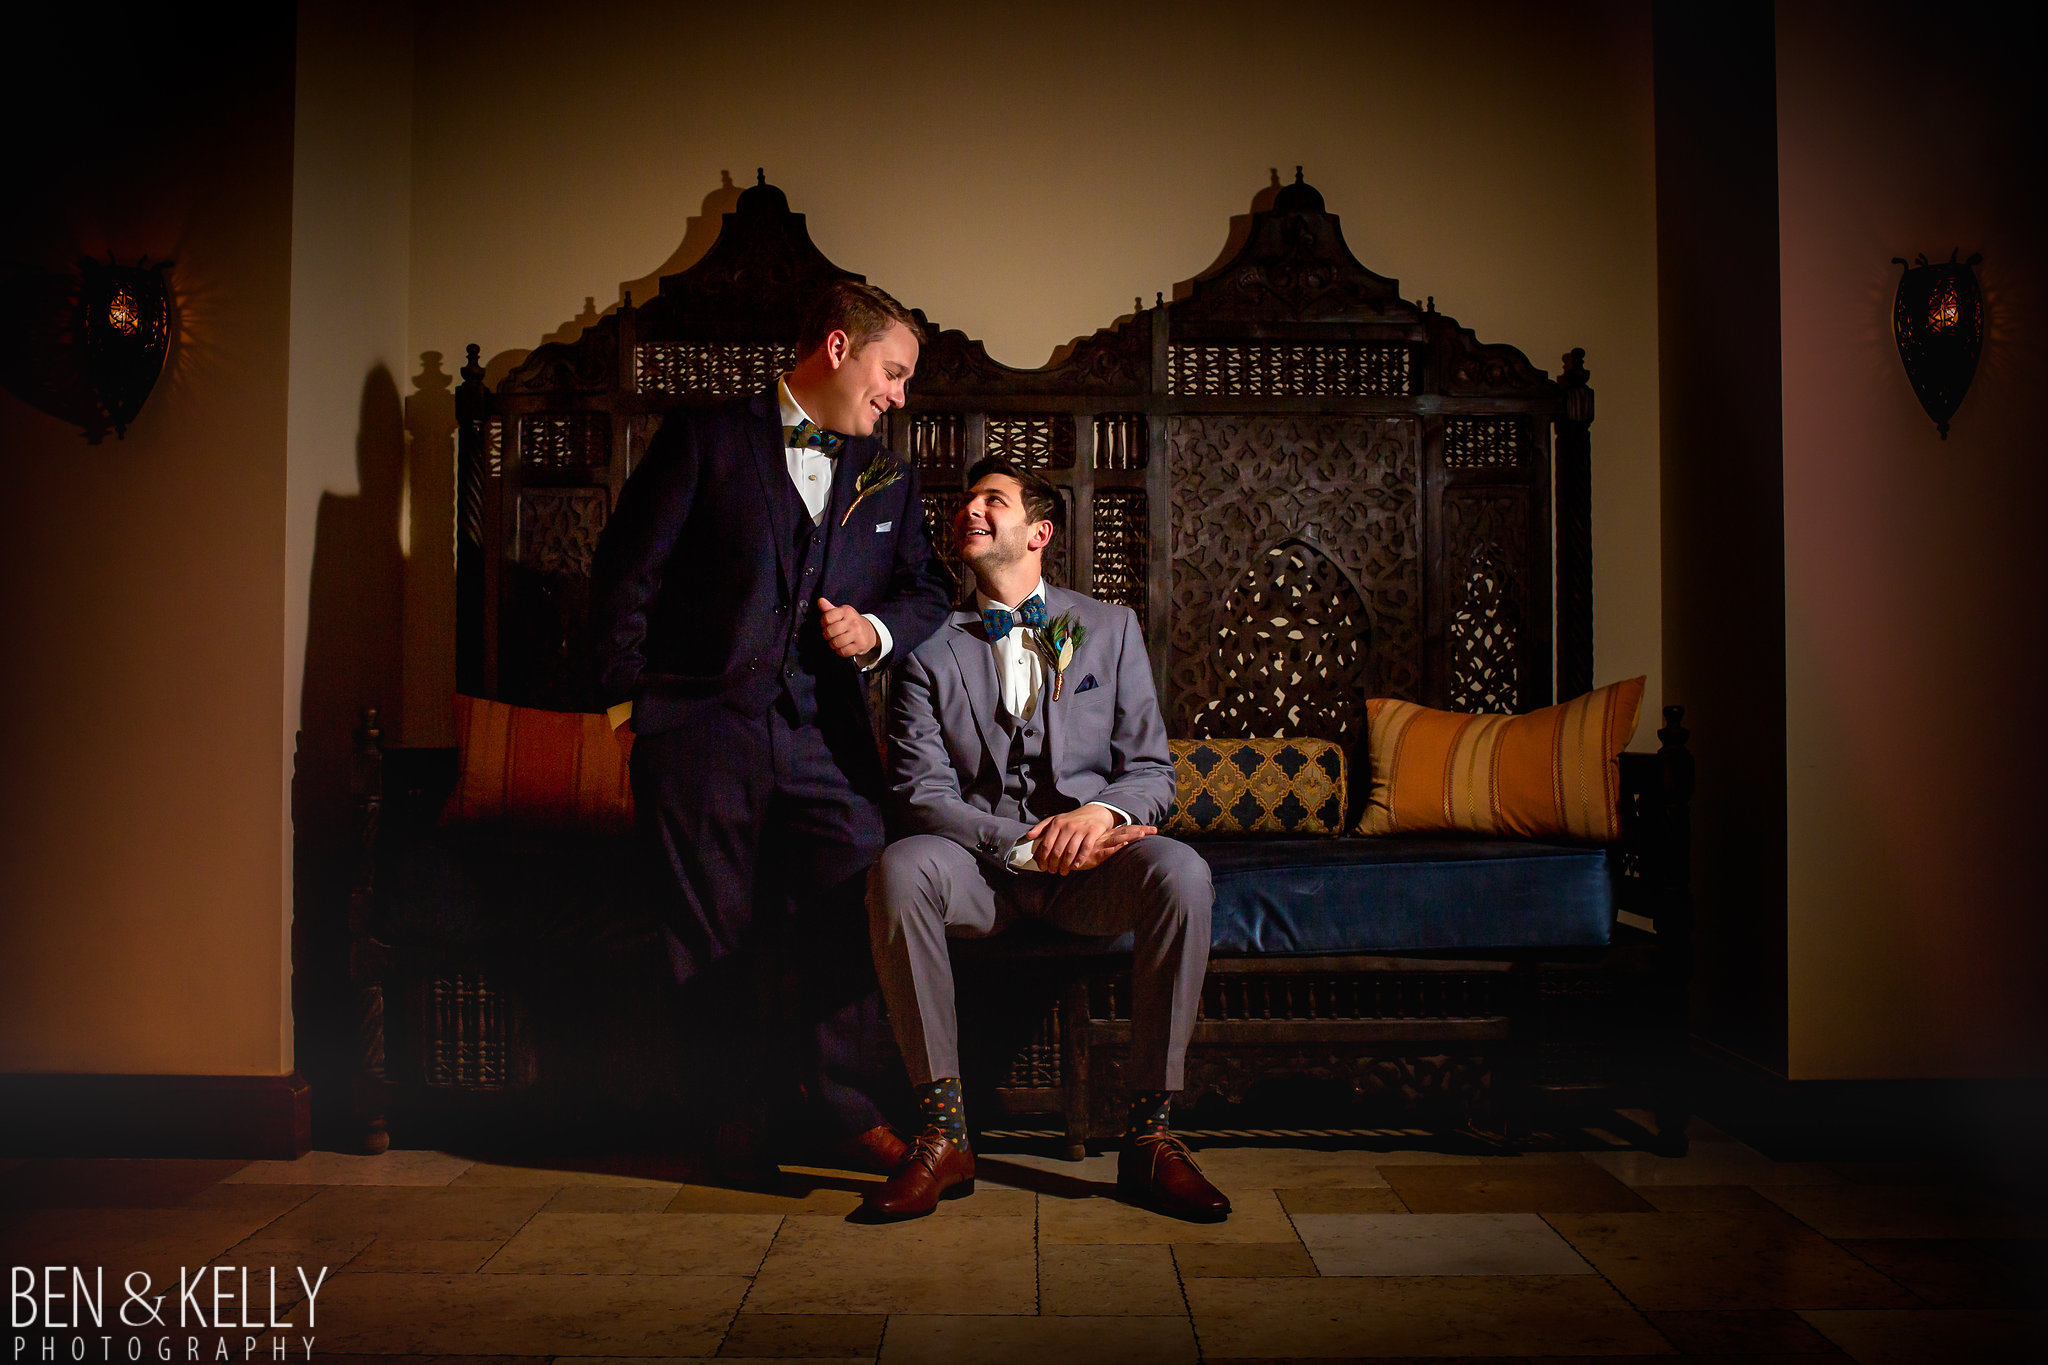 3 grooms first look groom portraits old spanish style portrait wedding portrait couple photos Life Design Events photo by Ben and Kelly Photography.jpg